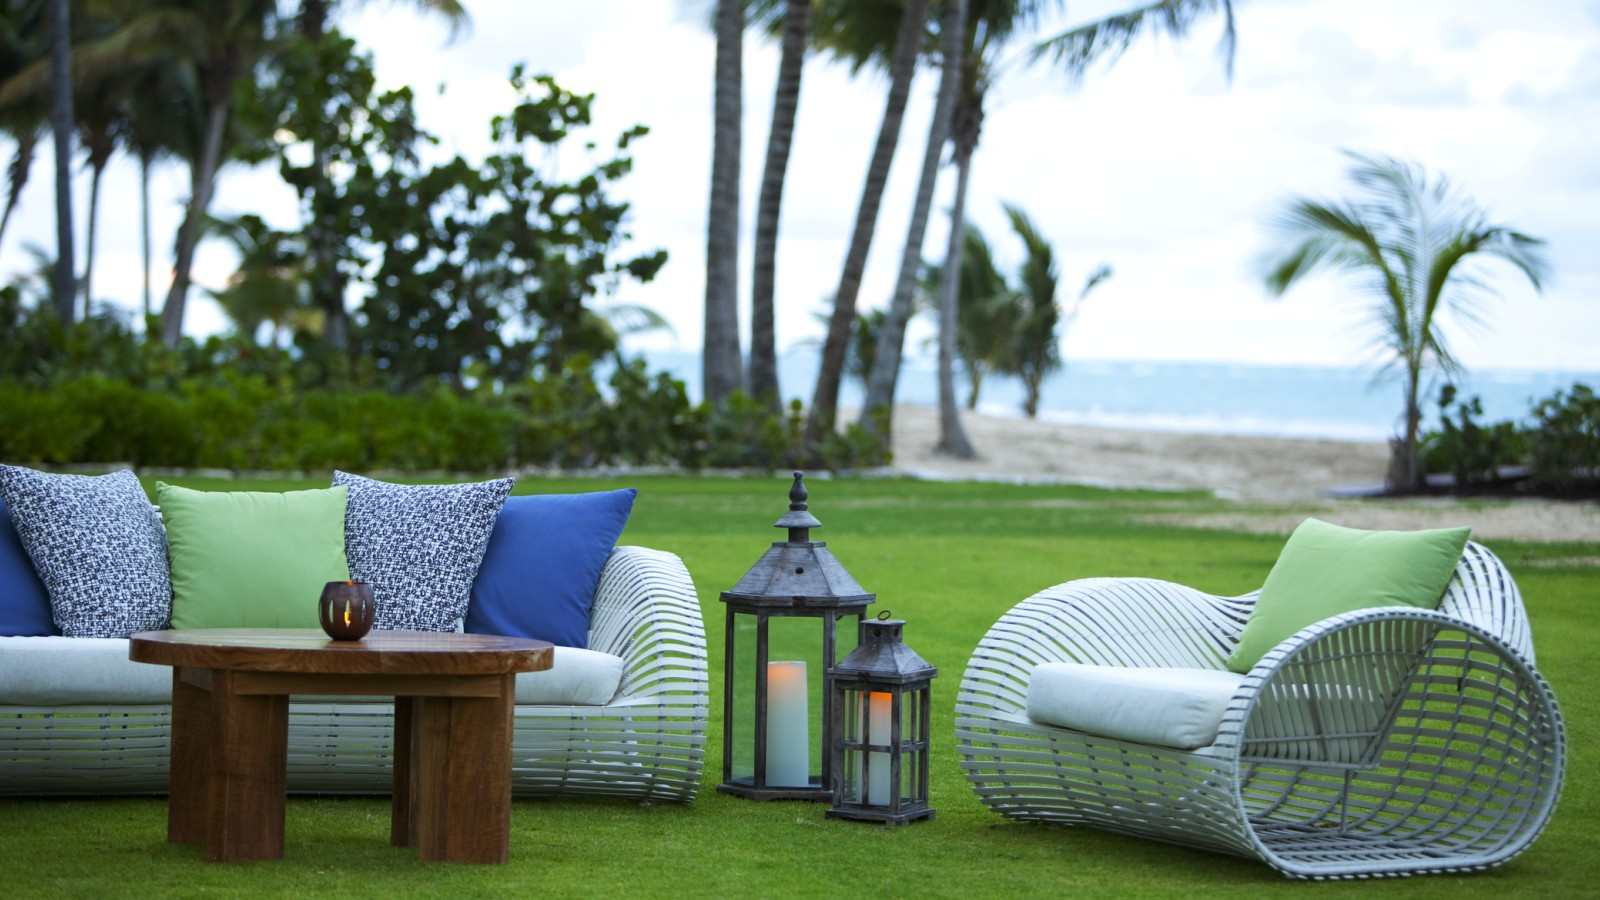 The St. Regis Bahia Beach - Sea Breeze Lawn